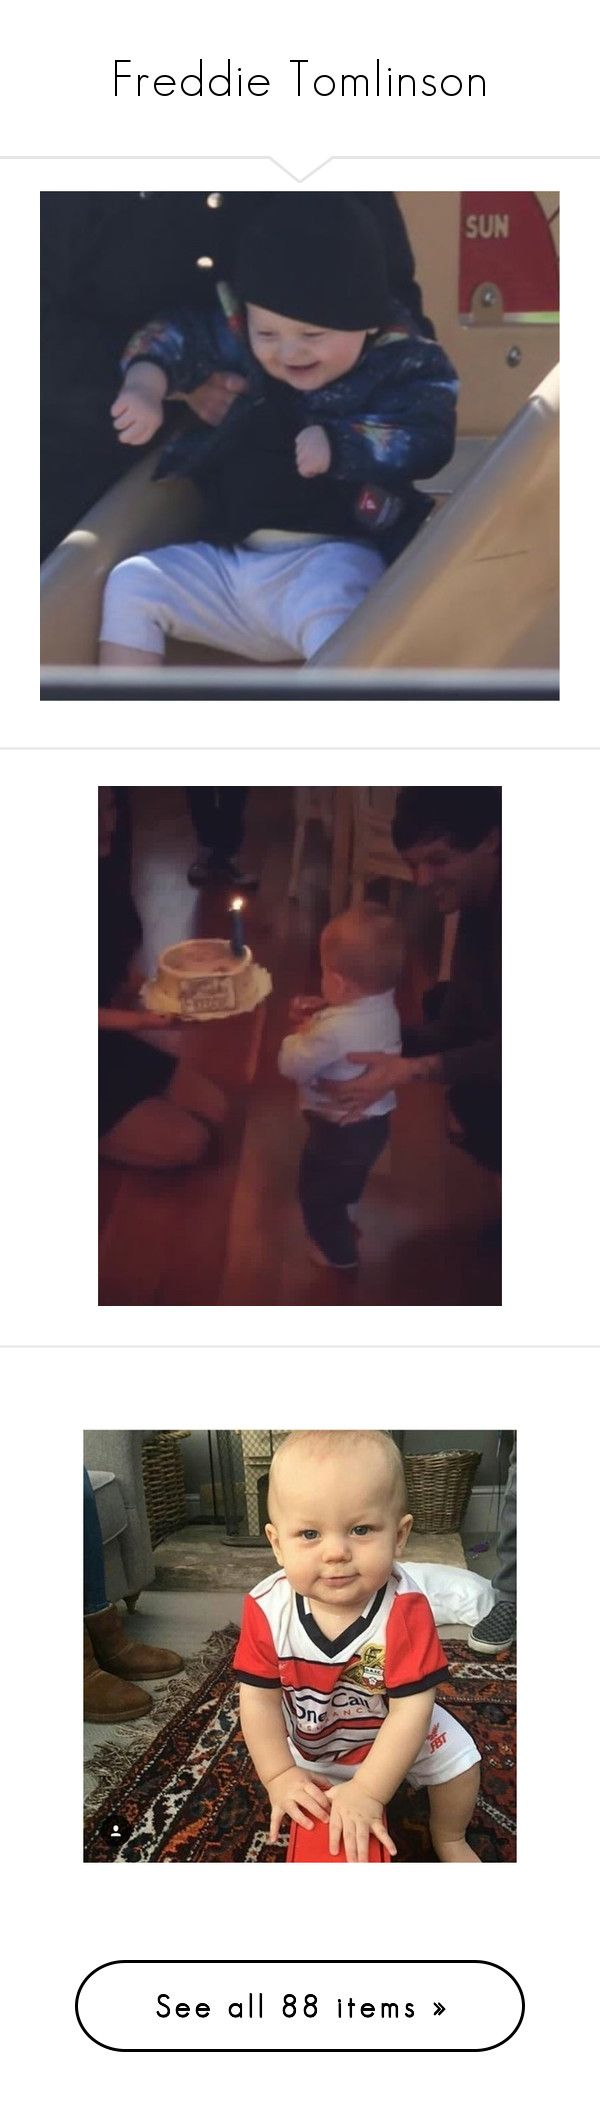 """""""Freddie Tomlinson"""" by kateremington-1 ❤ liked on Polyvore featuring louis tomlinson, pictures, louis and one direction"""